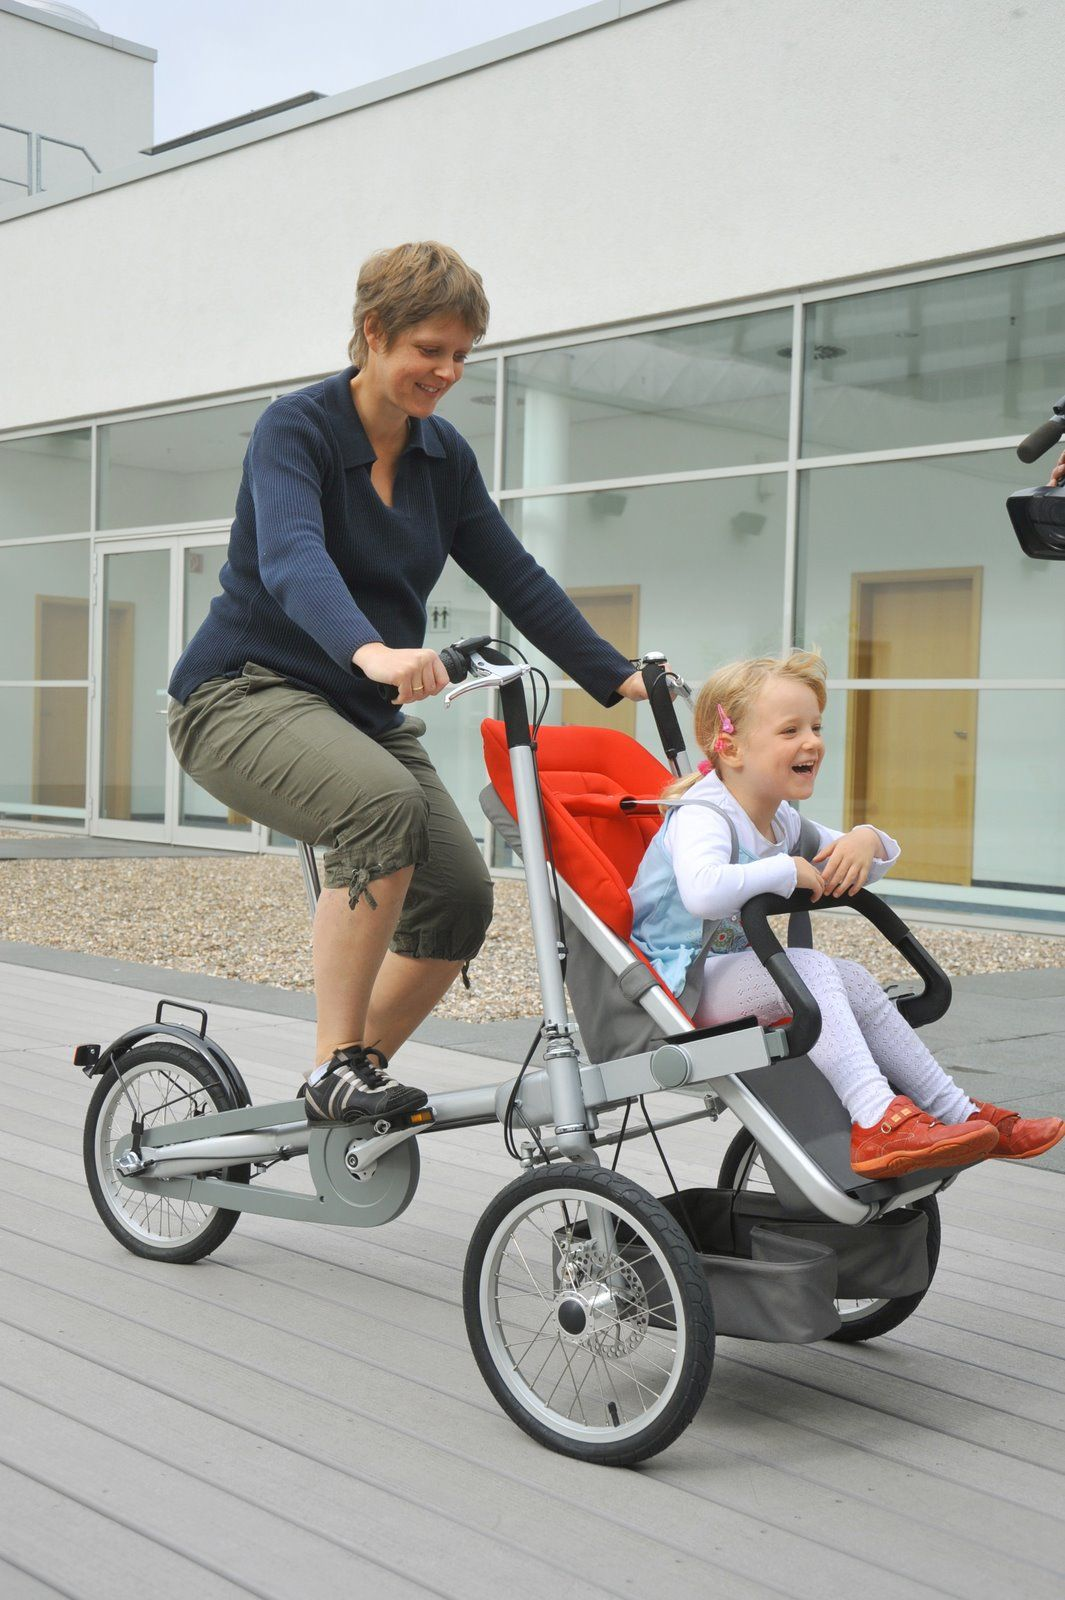 Taga Convertible Bike Stroller | Biking, Bikes and Toddlers